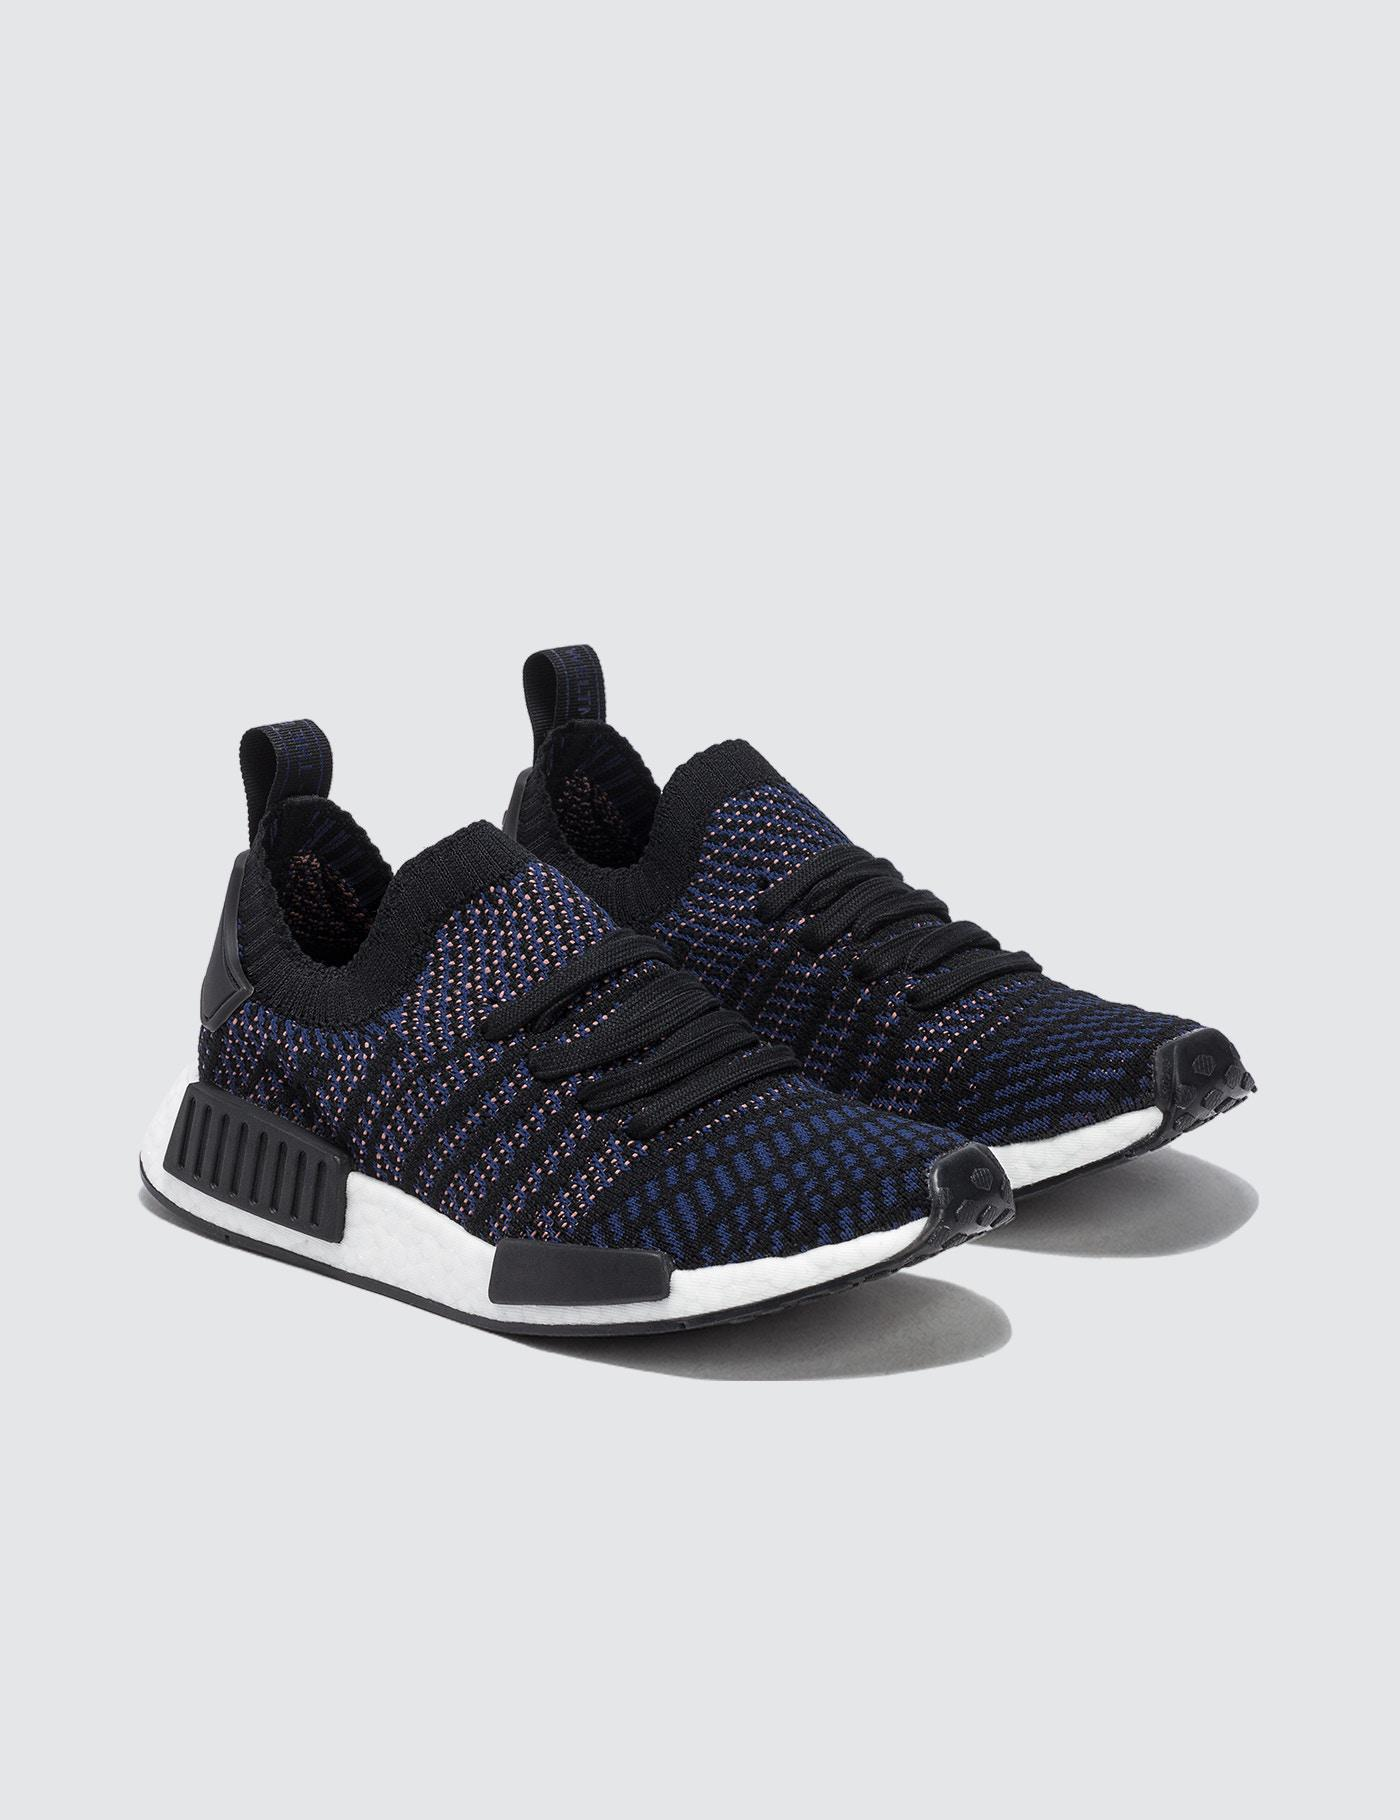 official photos 83f4d 71013 Lyst - adidas Originals Nmd R1 Stlt Pk W in Black for Men